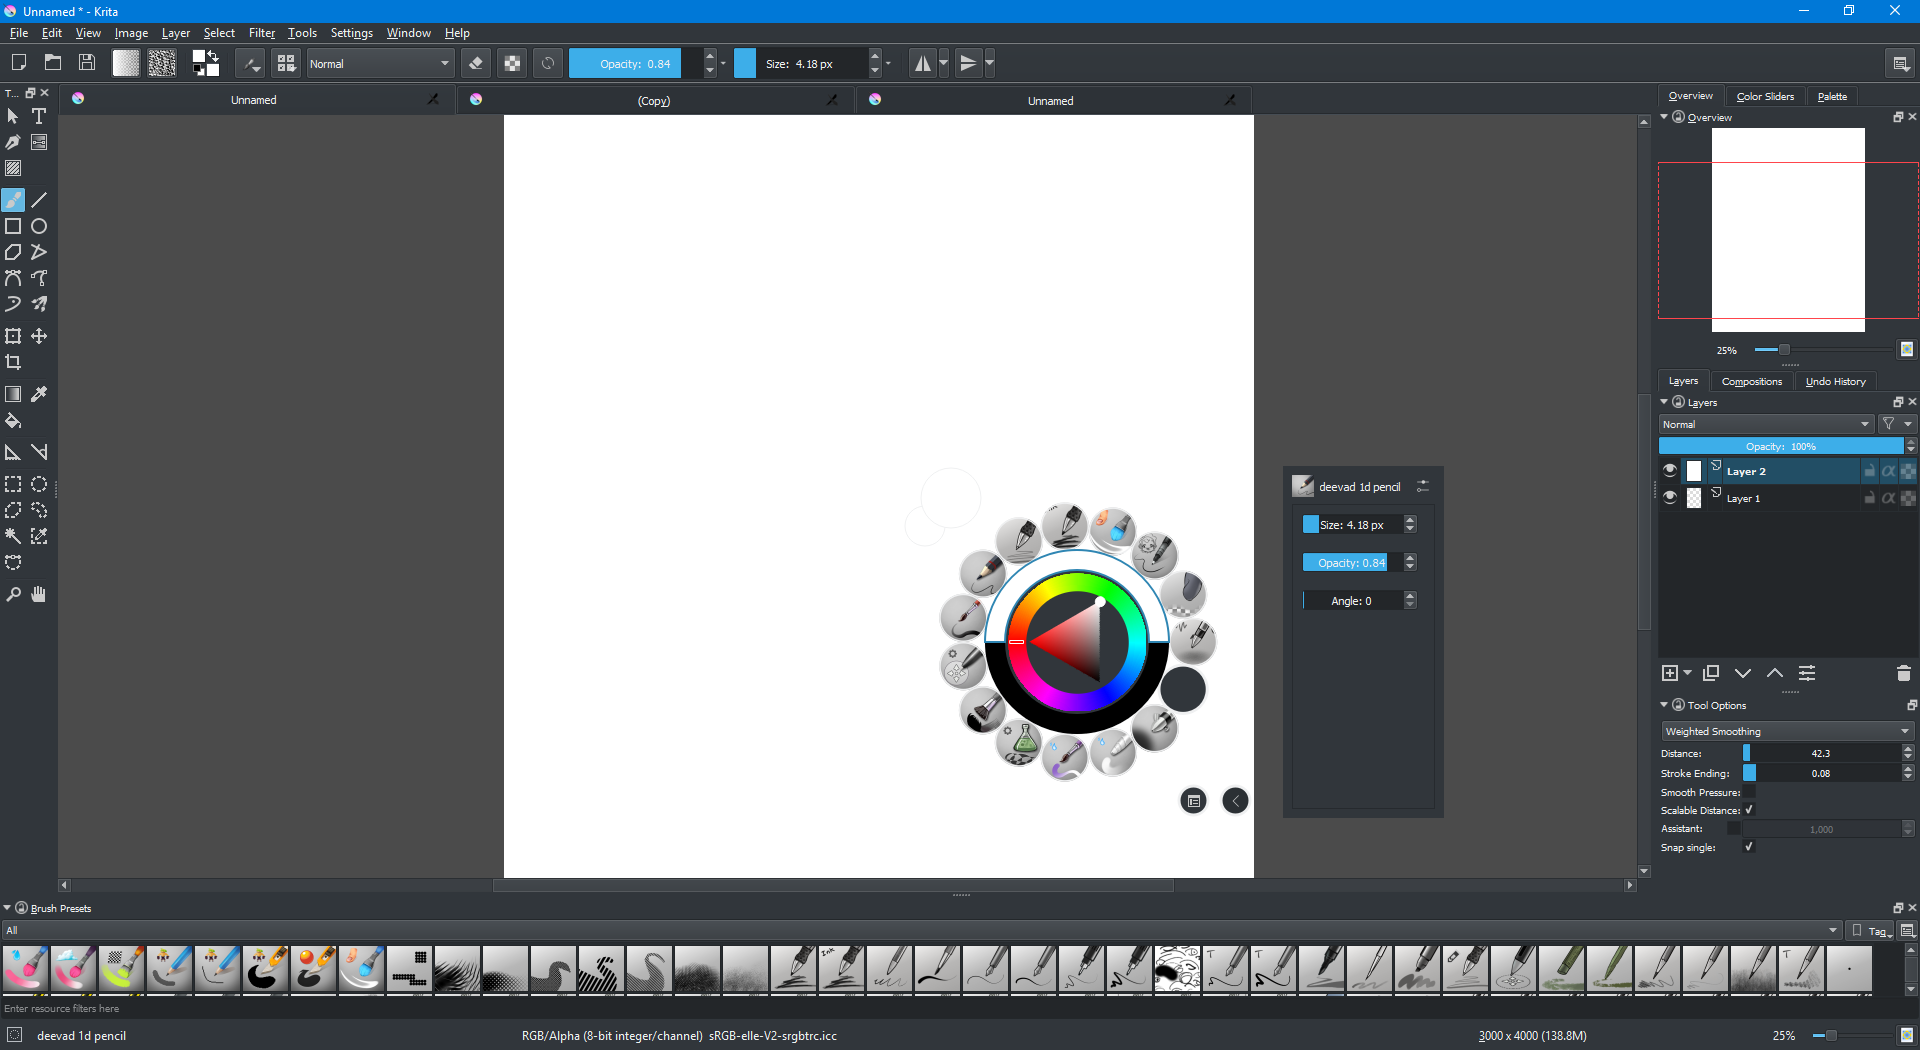 how to make Photoshop like Krita? - Adobe Support Community